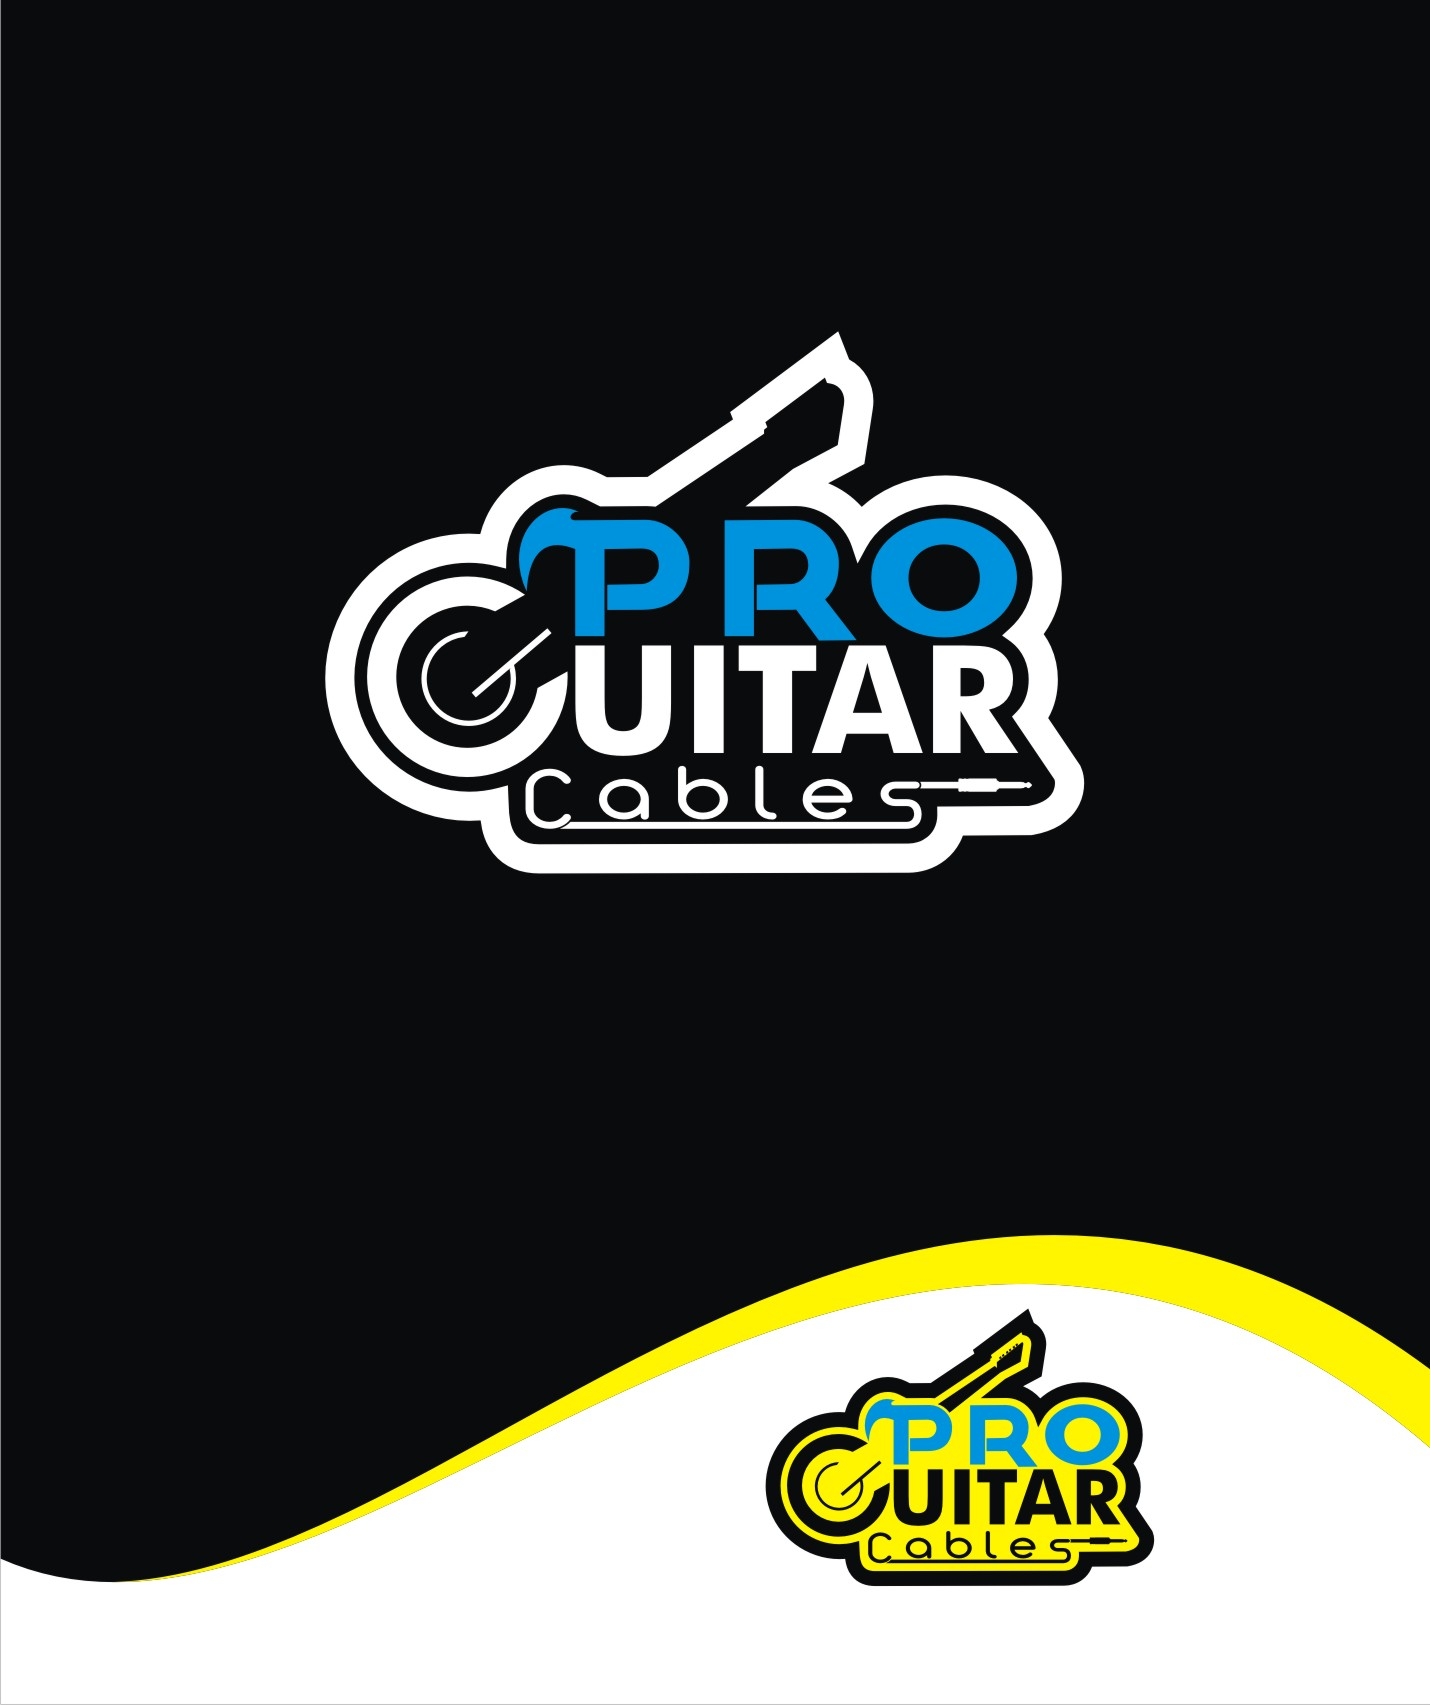 Logo Design by Private User - Entry No. 42 in the Logo Design Contest Pro Guitar Cables Logo Design.